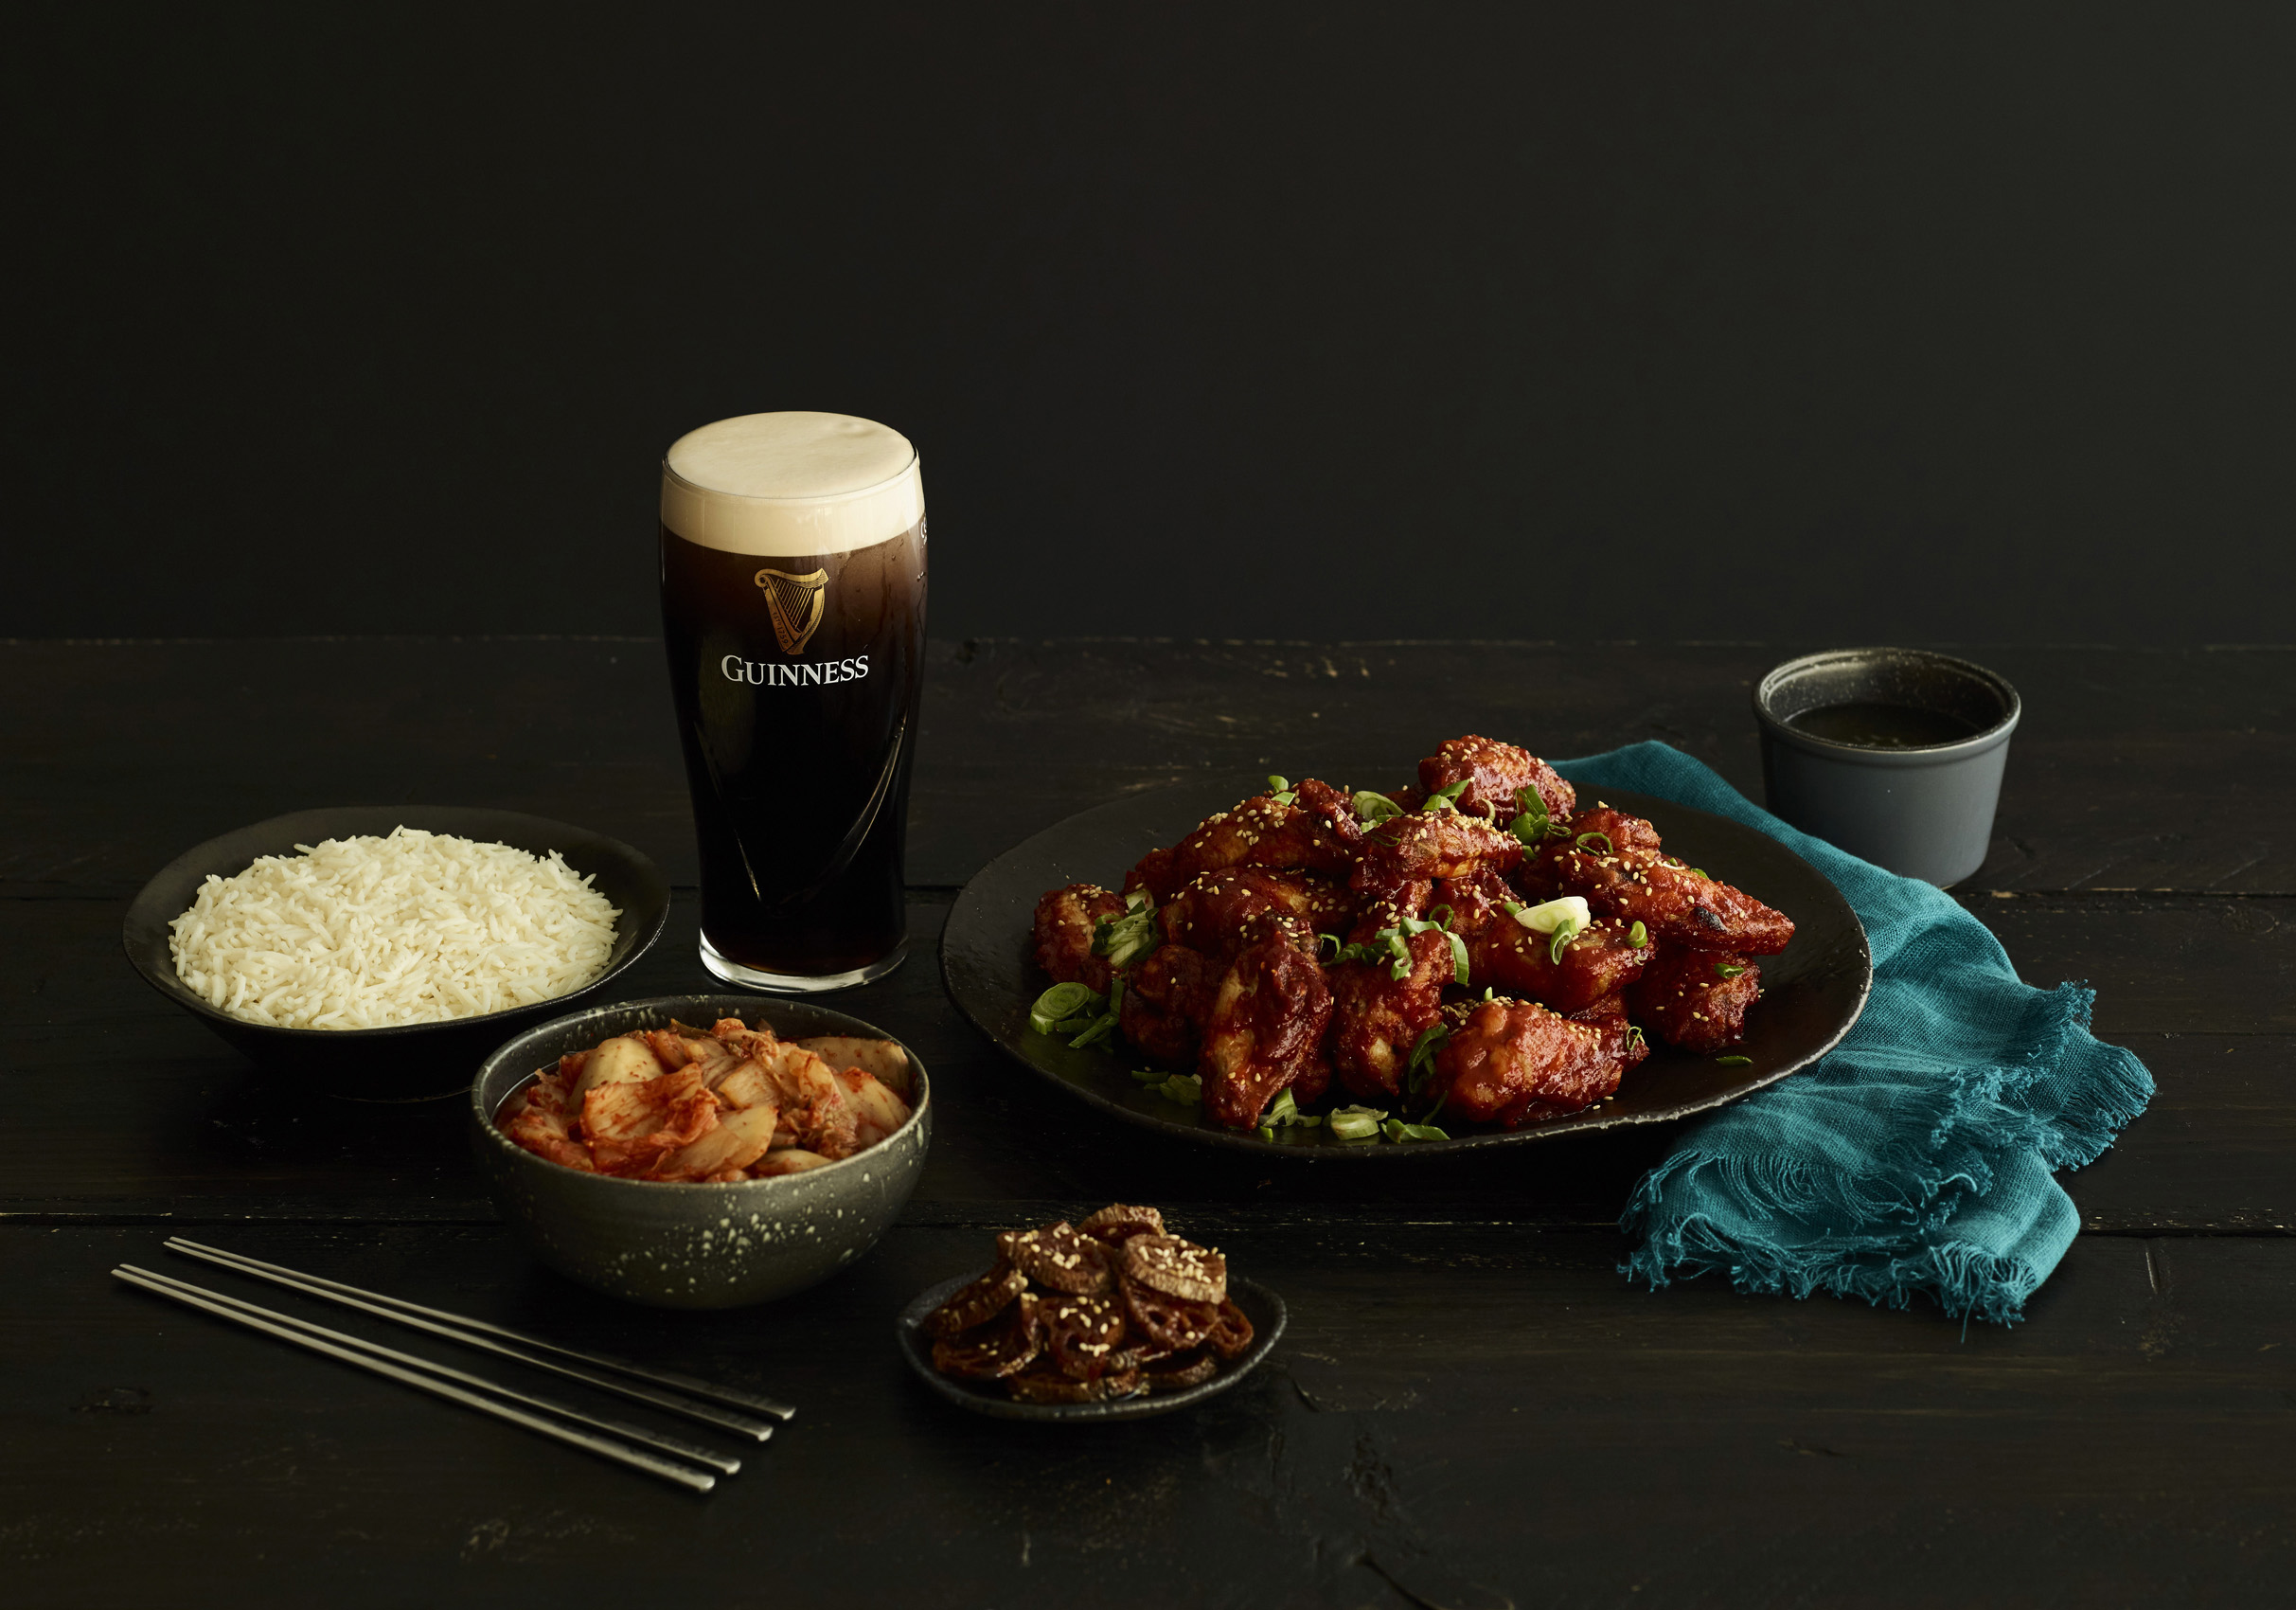 SteveRyan_Photographer_Food_Guinness_ChickenWings_106